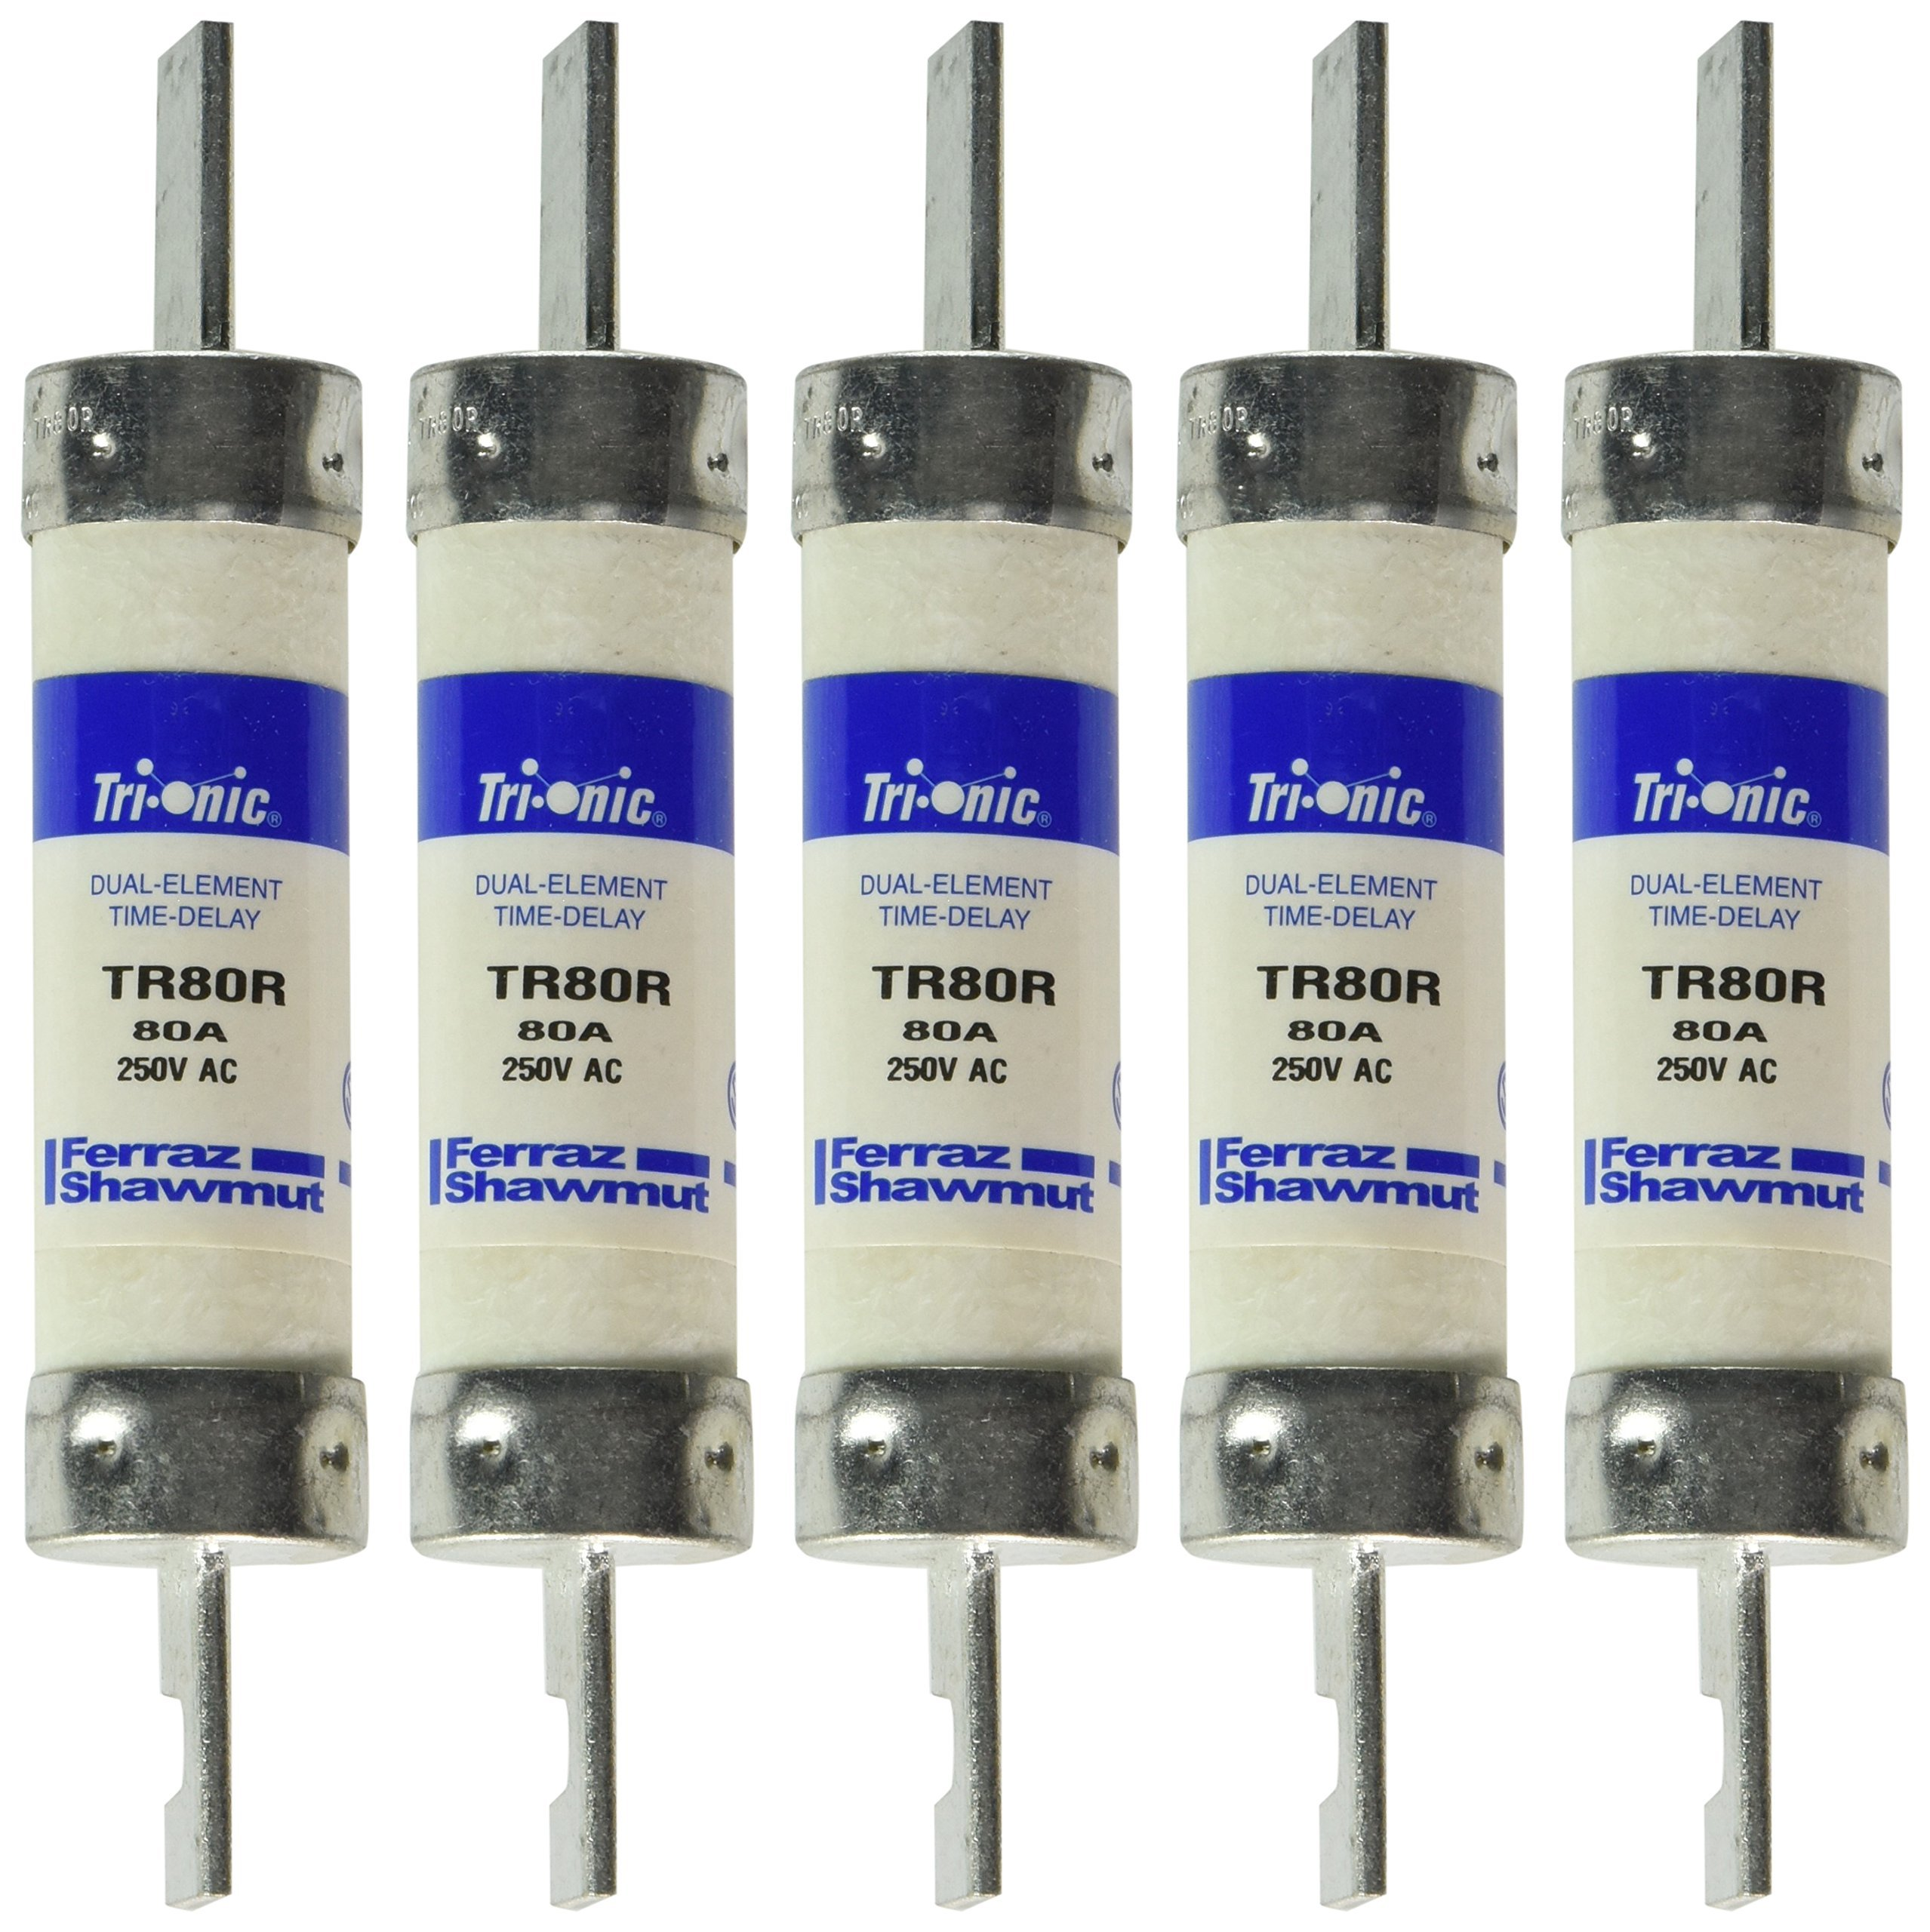 Mersen TR80R 250V 80A 5 7/8X1 1/16 Rk5 Time Delay Fuse, 5-Pack